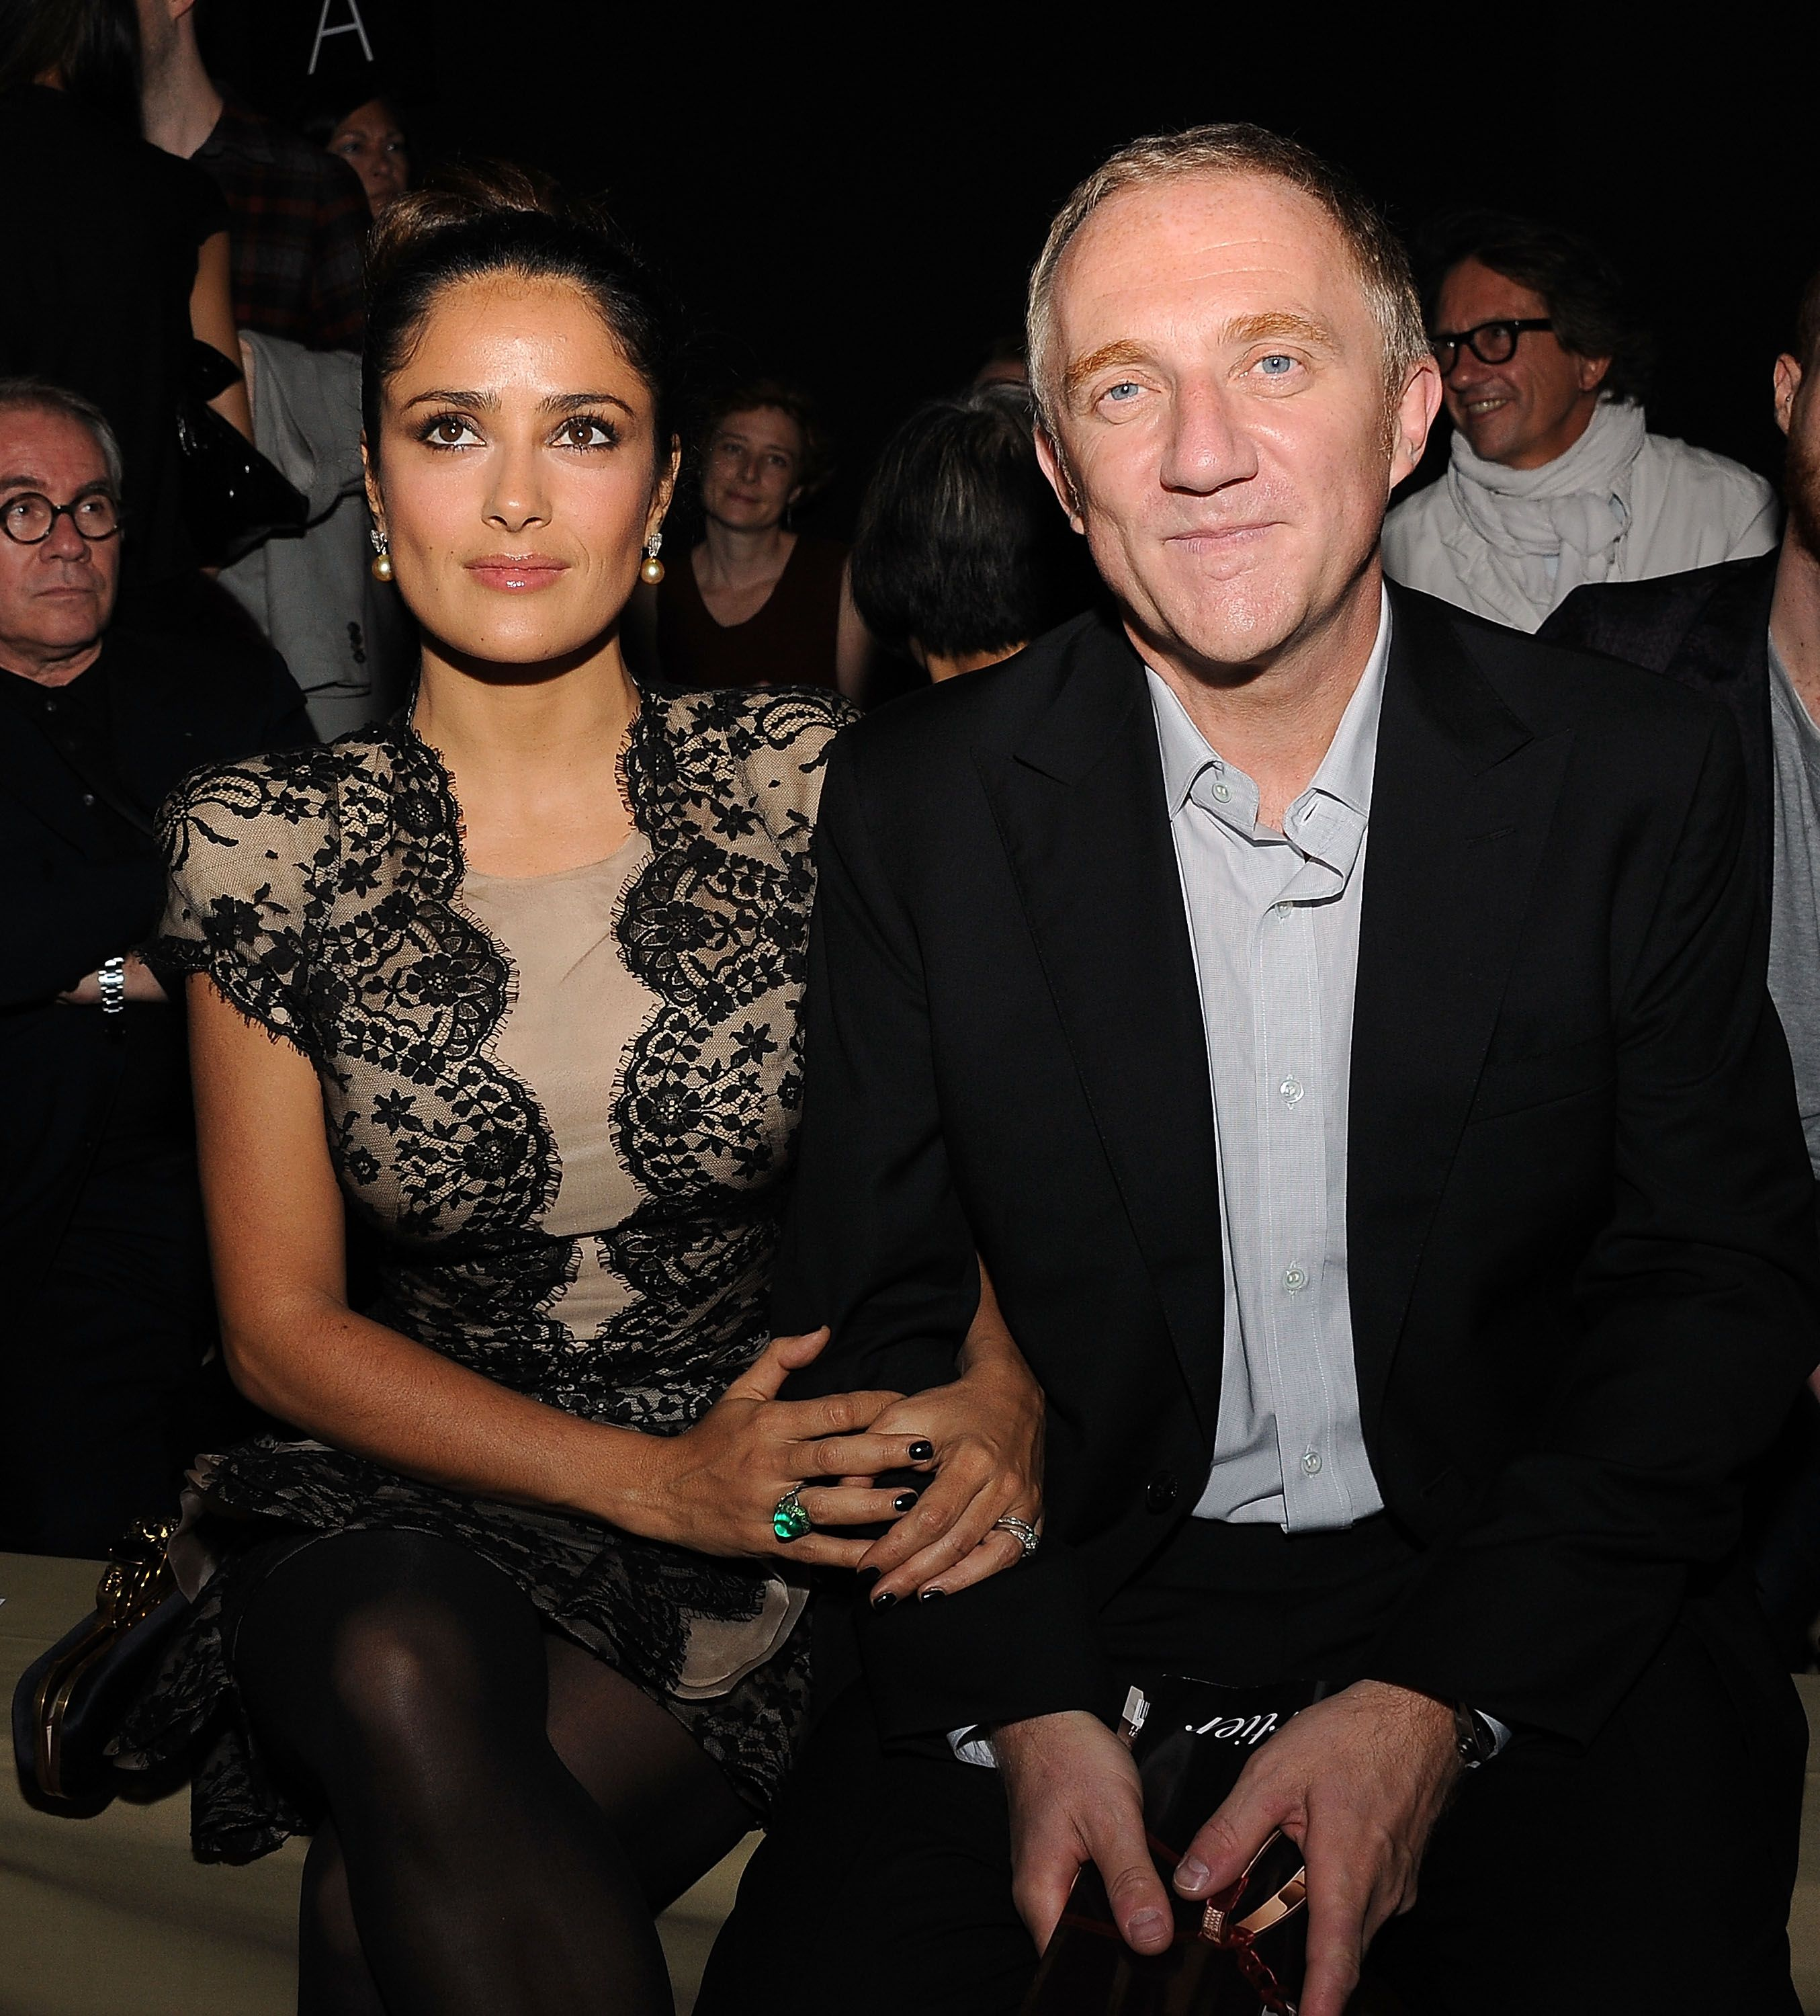 Salma Hayek and Francois-Henri Pinault at the Alexander McQueen Ready to Wear Spring/Summer show during Paris Fashion Week on October 5, 2010, in France | Photo: Pascal Le Segretain/Getty Images